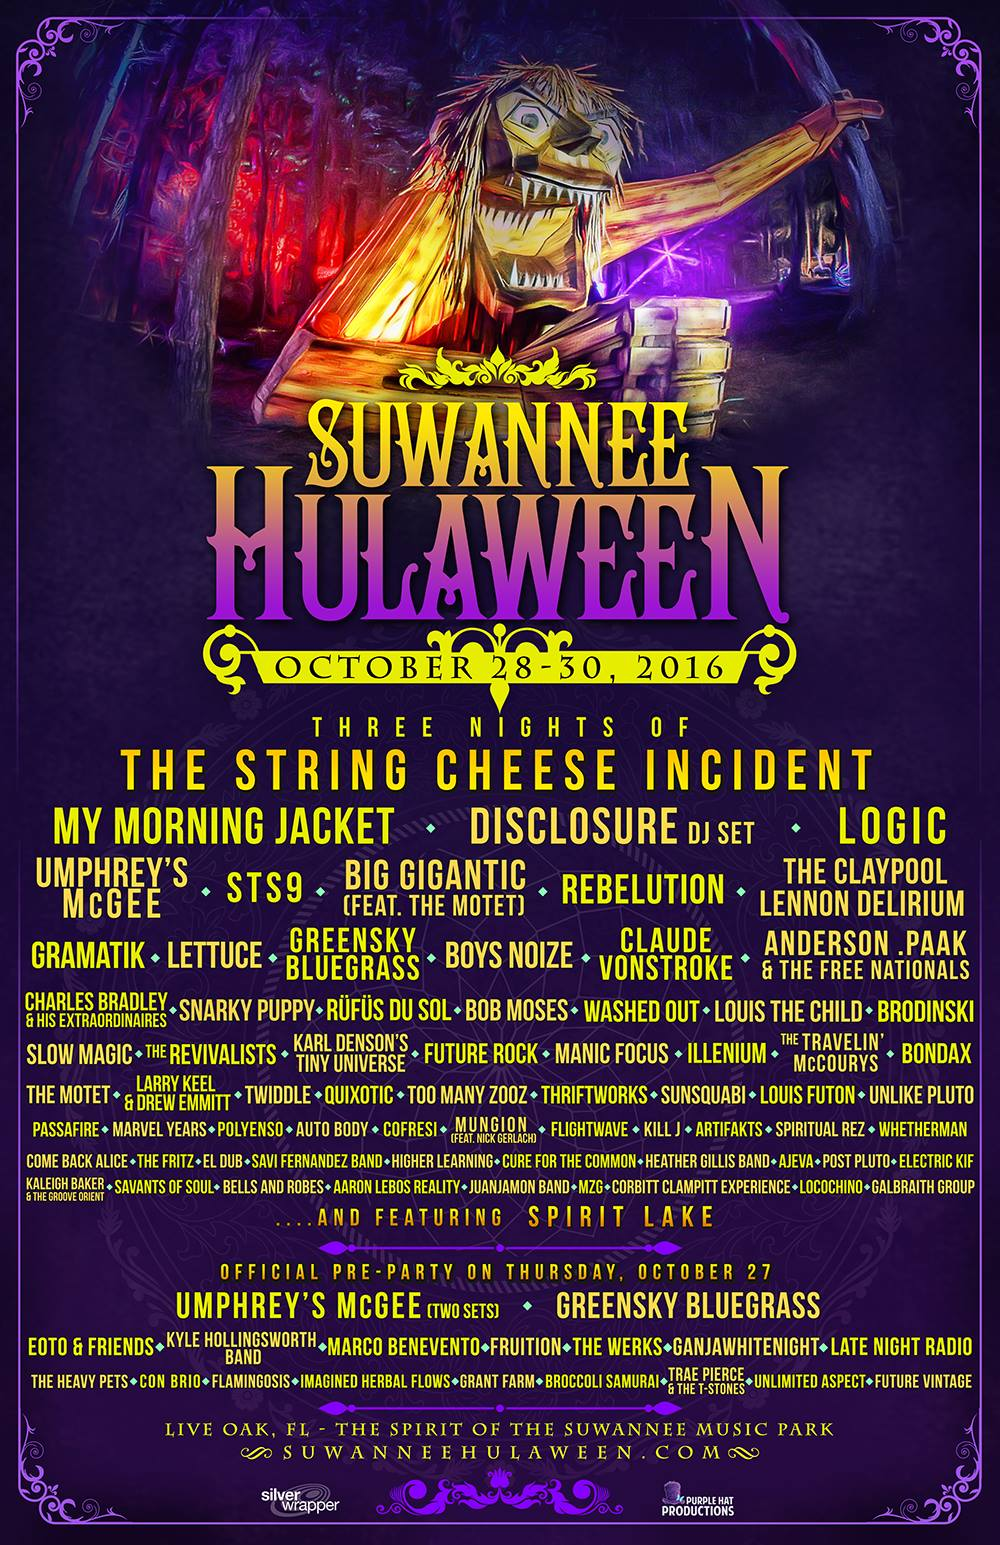 Suwannee Hulaween Announces Phase 2